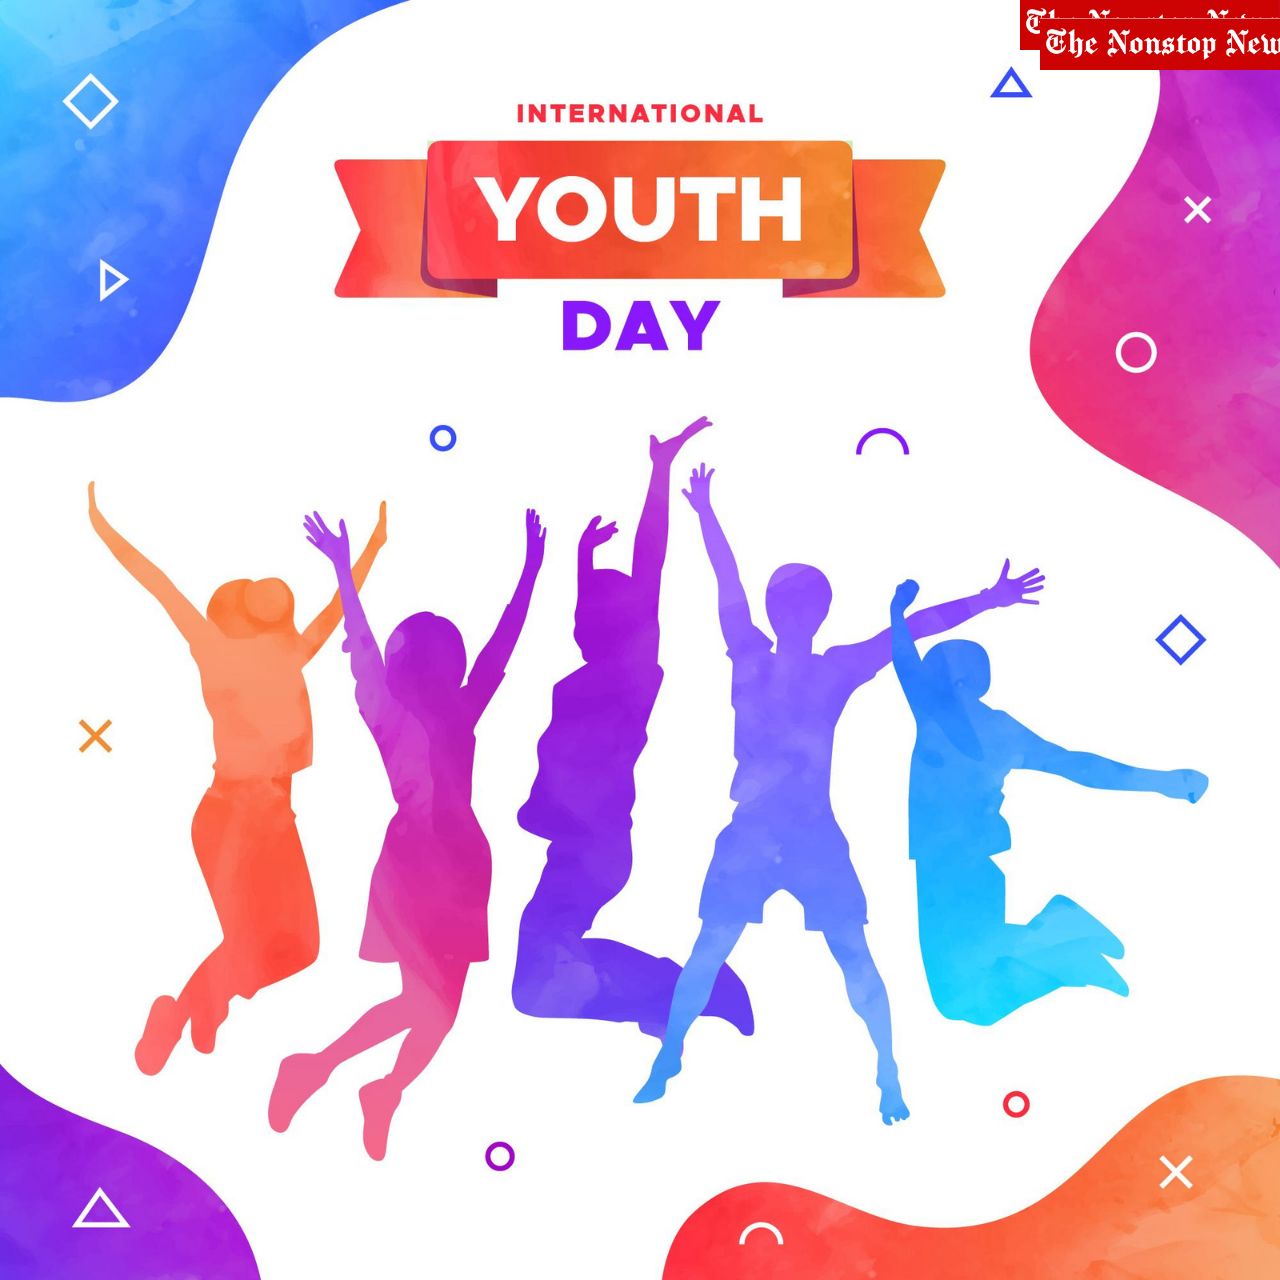 International Youth Day 2021 Theme, Wishes, Quotes, Slogan, Poster, Messages, Greetings, Status, and HD Images to Share